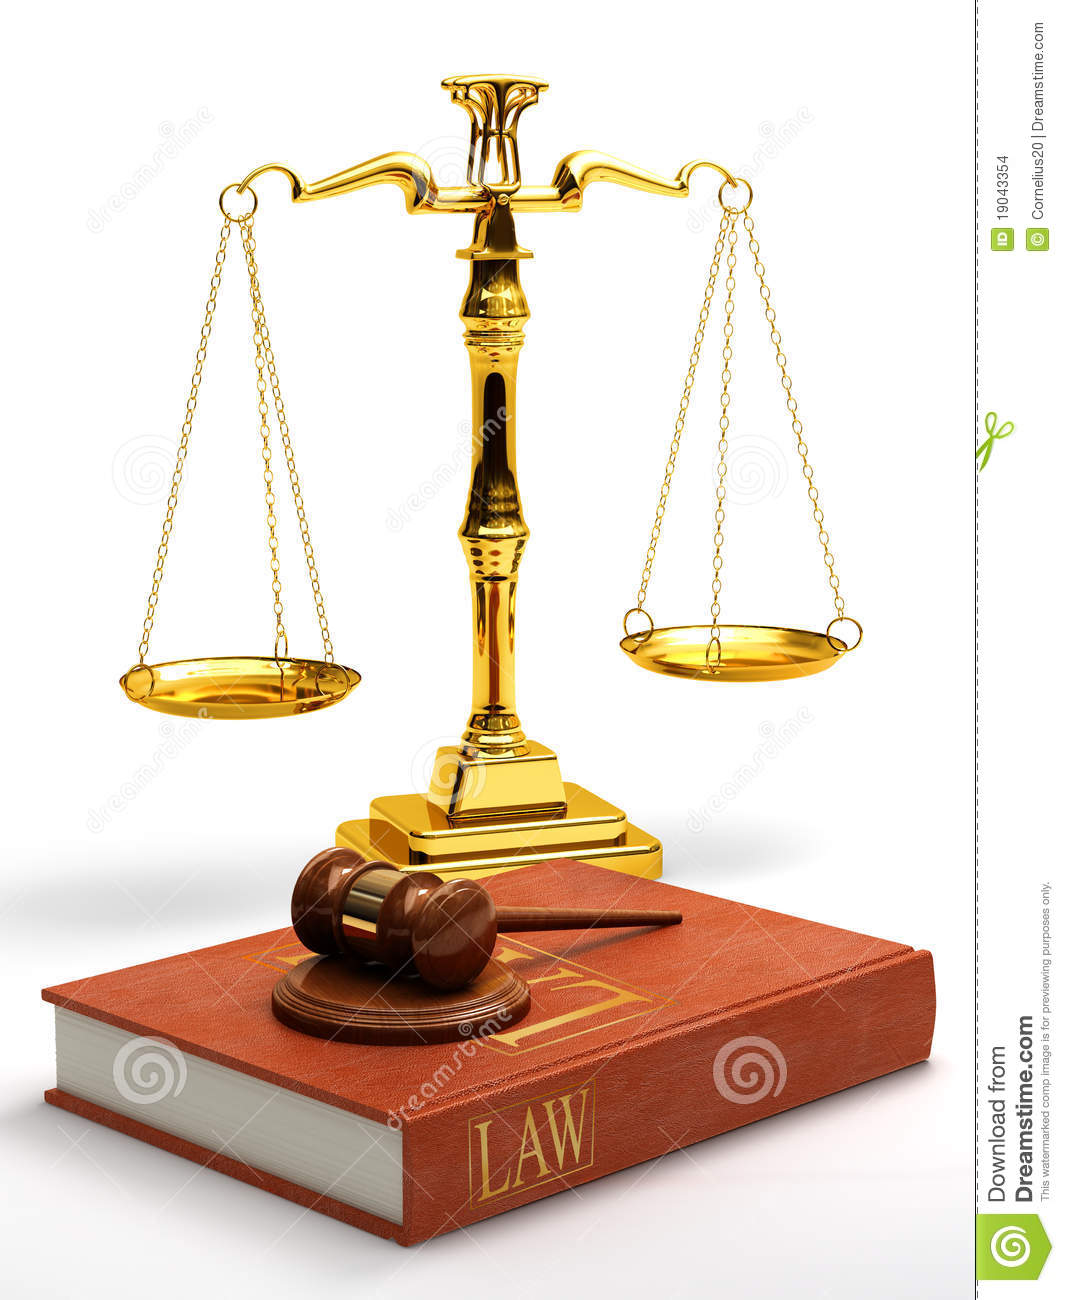 Law Book Clipart - Clipart Suggest